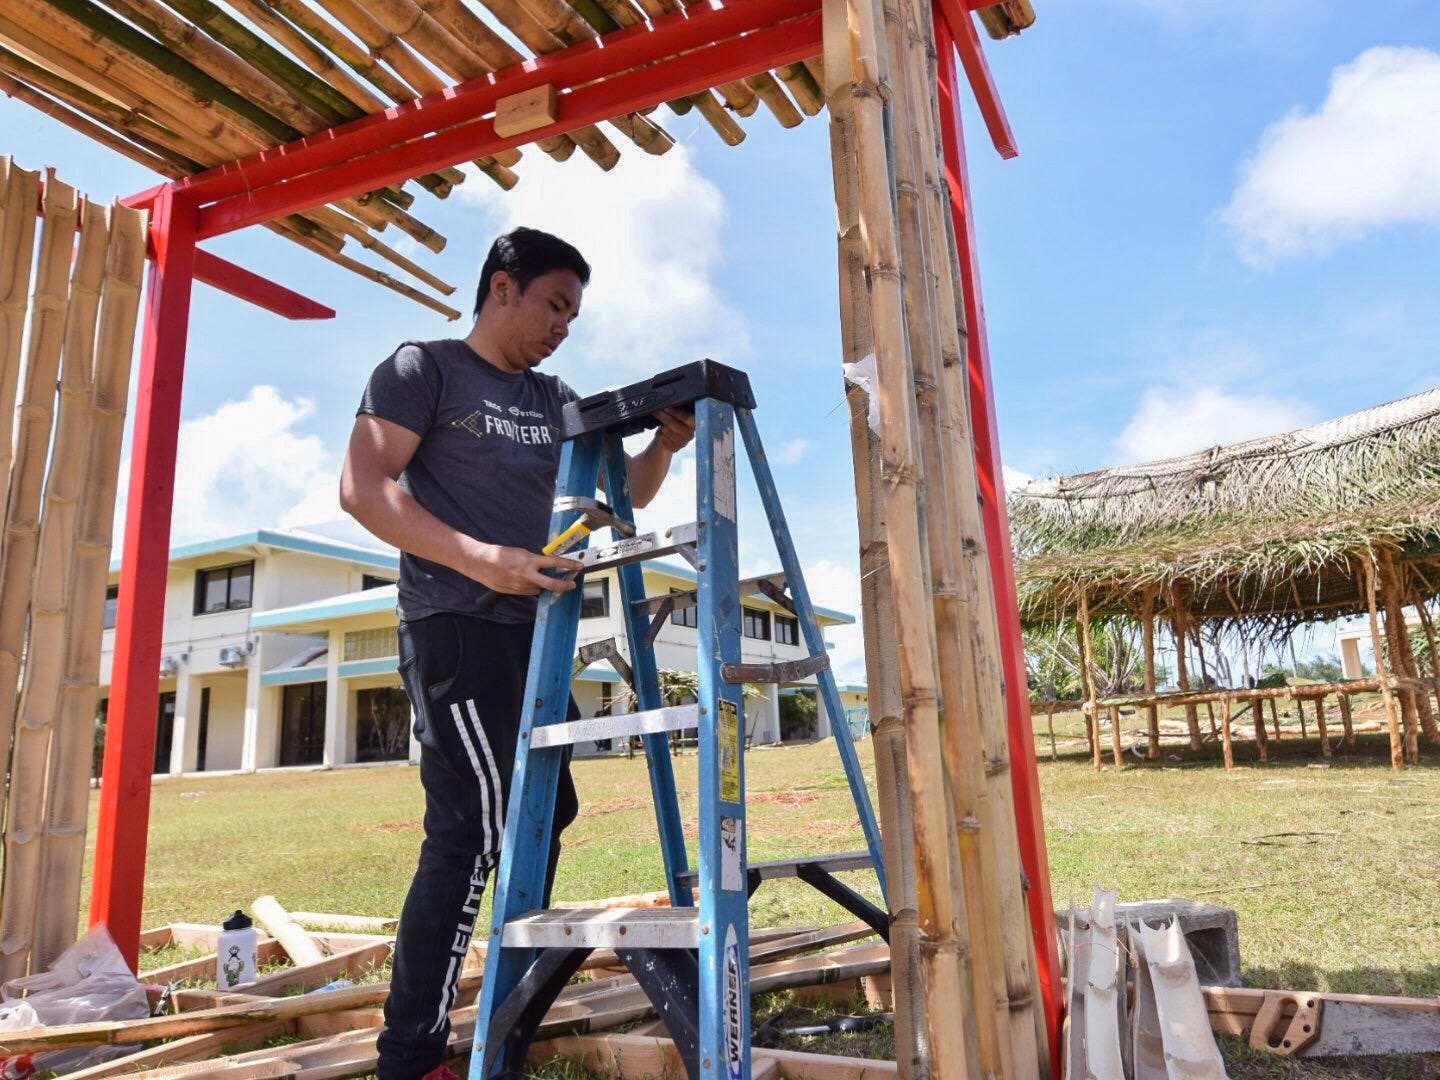 Nilo Espinoza, a Society of American Military Engineers Student Chapter member, gets to work on his club's hut in preparation for the 51st University of Guam Charter Day on the UOG campus, March 11, 2019.